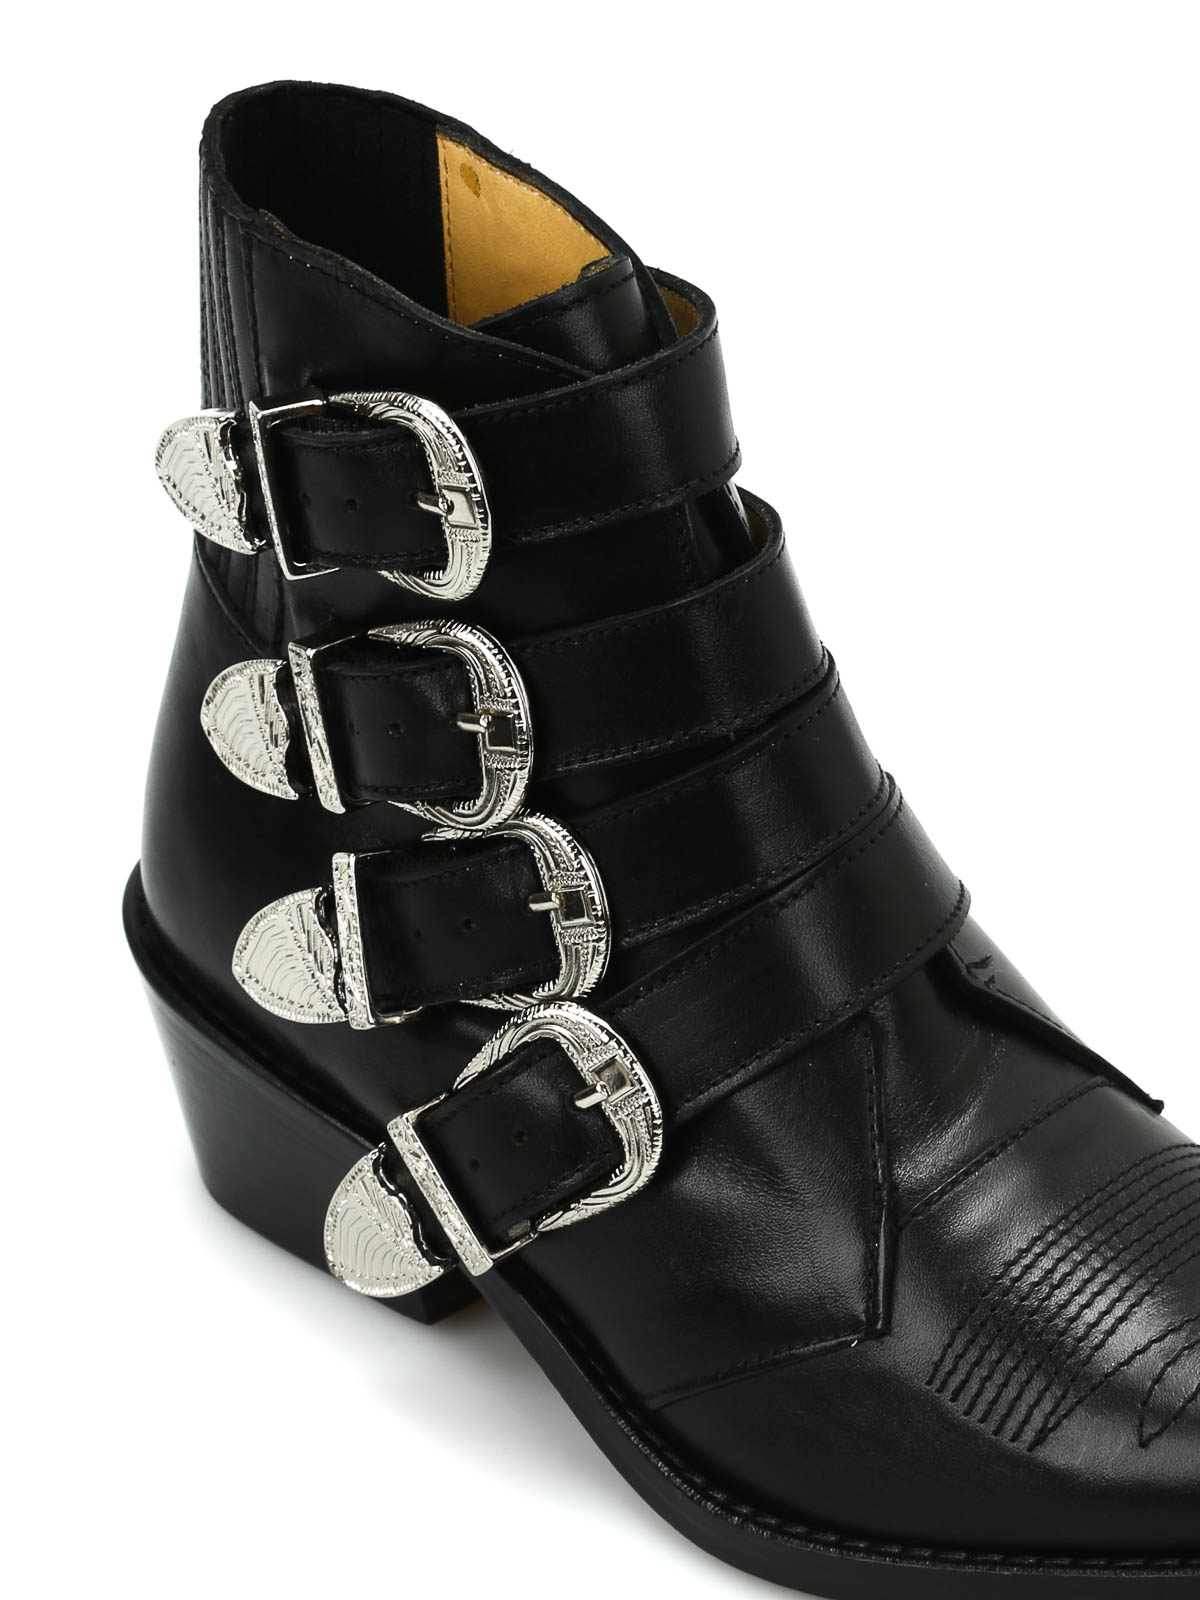 Toga - Buckle Detailed Leather Ankle Boots - Ankle Boots - A J006 Black Leather-9948